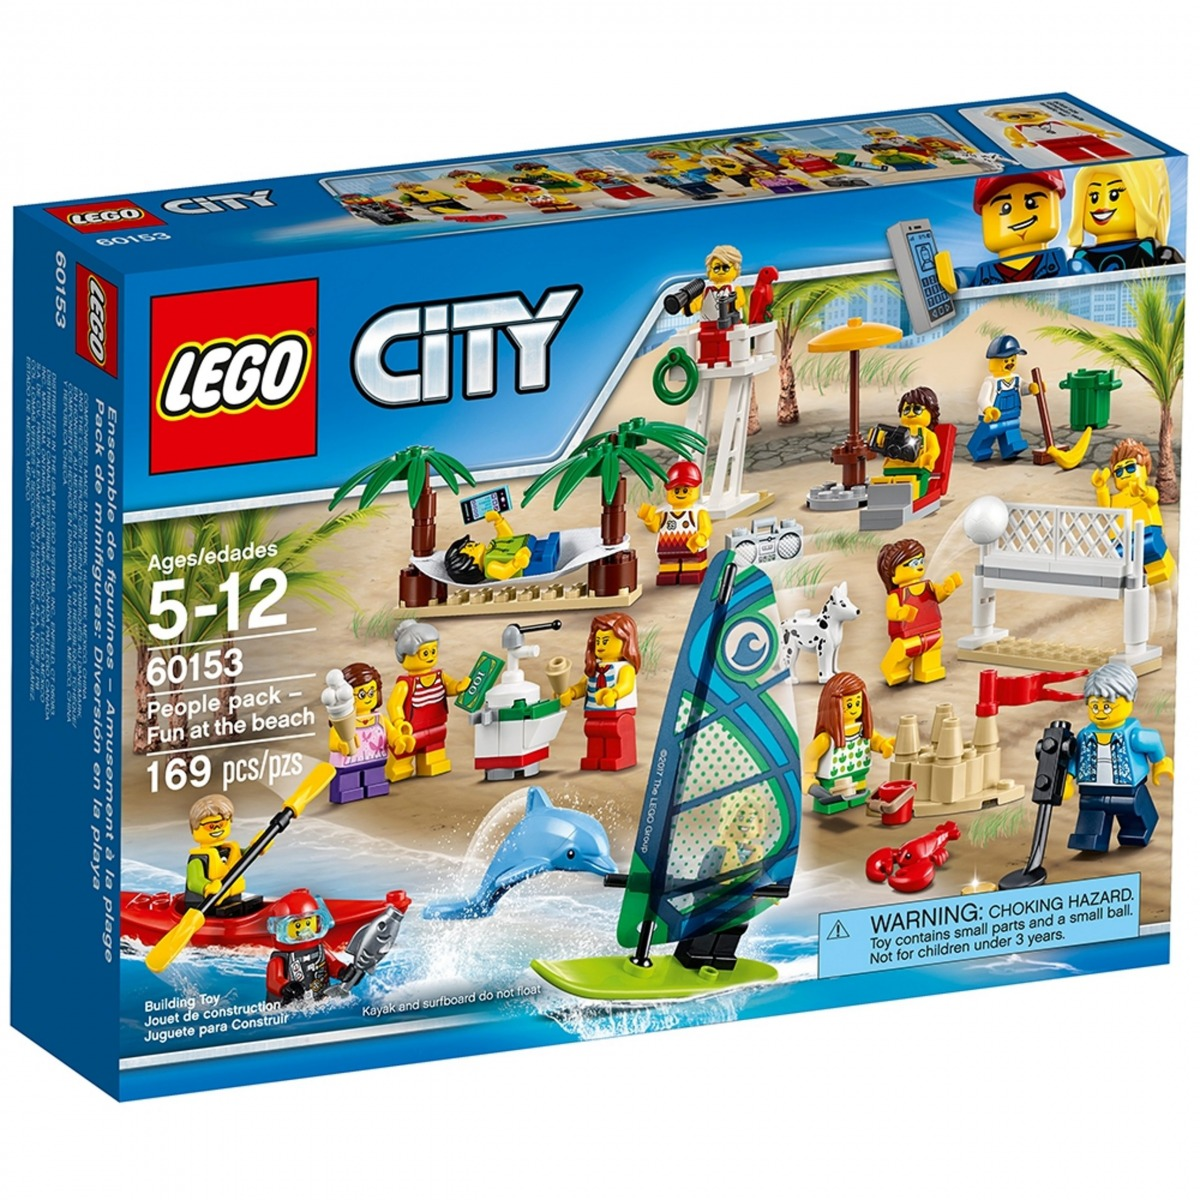 lego 60153 people pack fun at the beach scaled